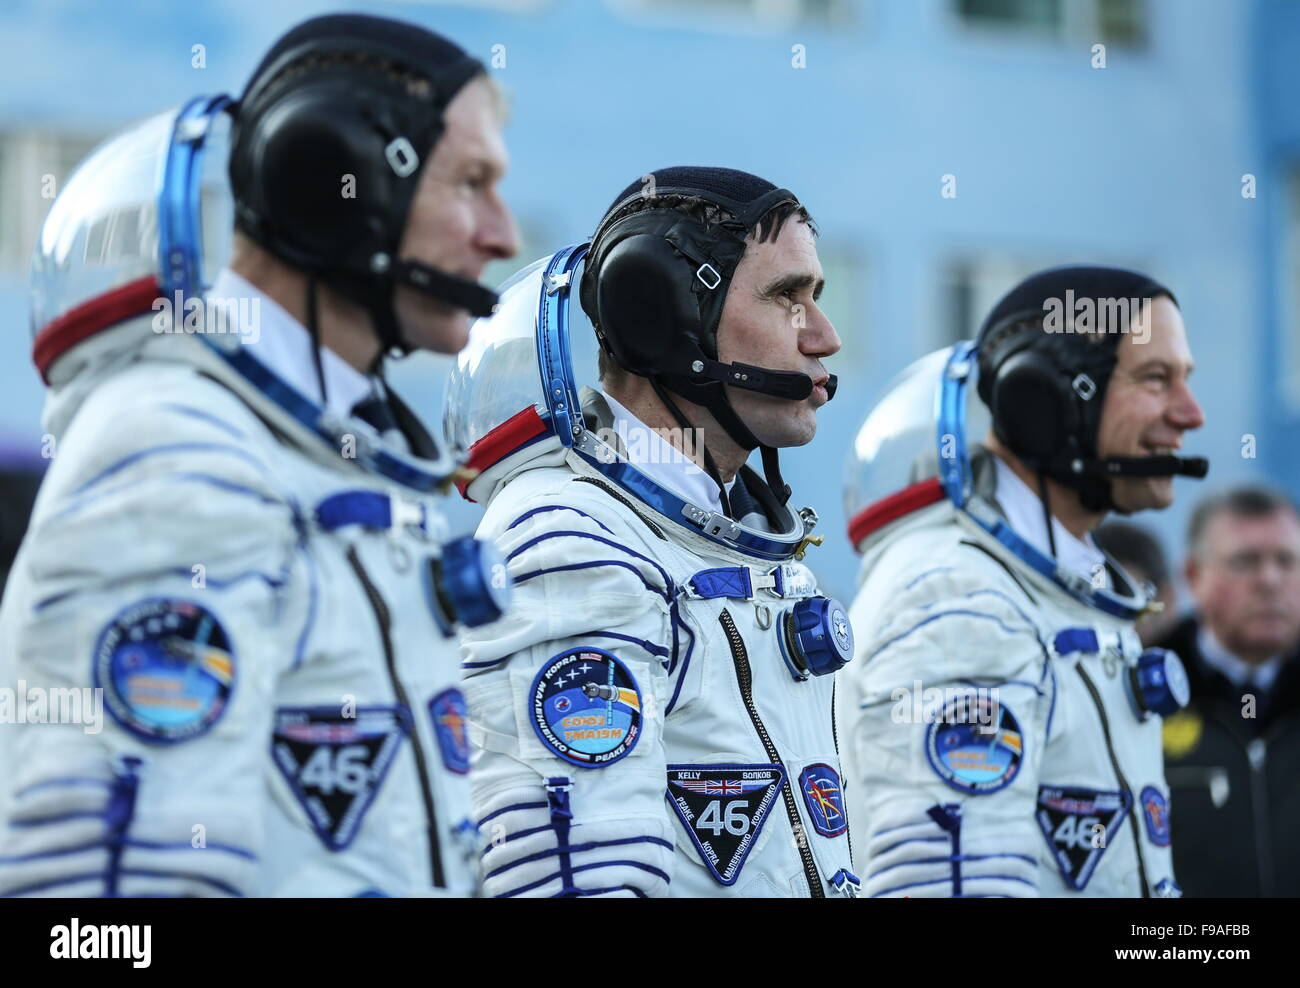 Baikonur, Kazakhstan. 15th Dec, 2015. ISS Expedition 46/47 crew members, ESA astronaut Timothy Peake, Roscosmos - Stock Image